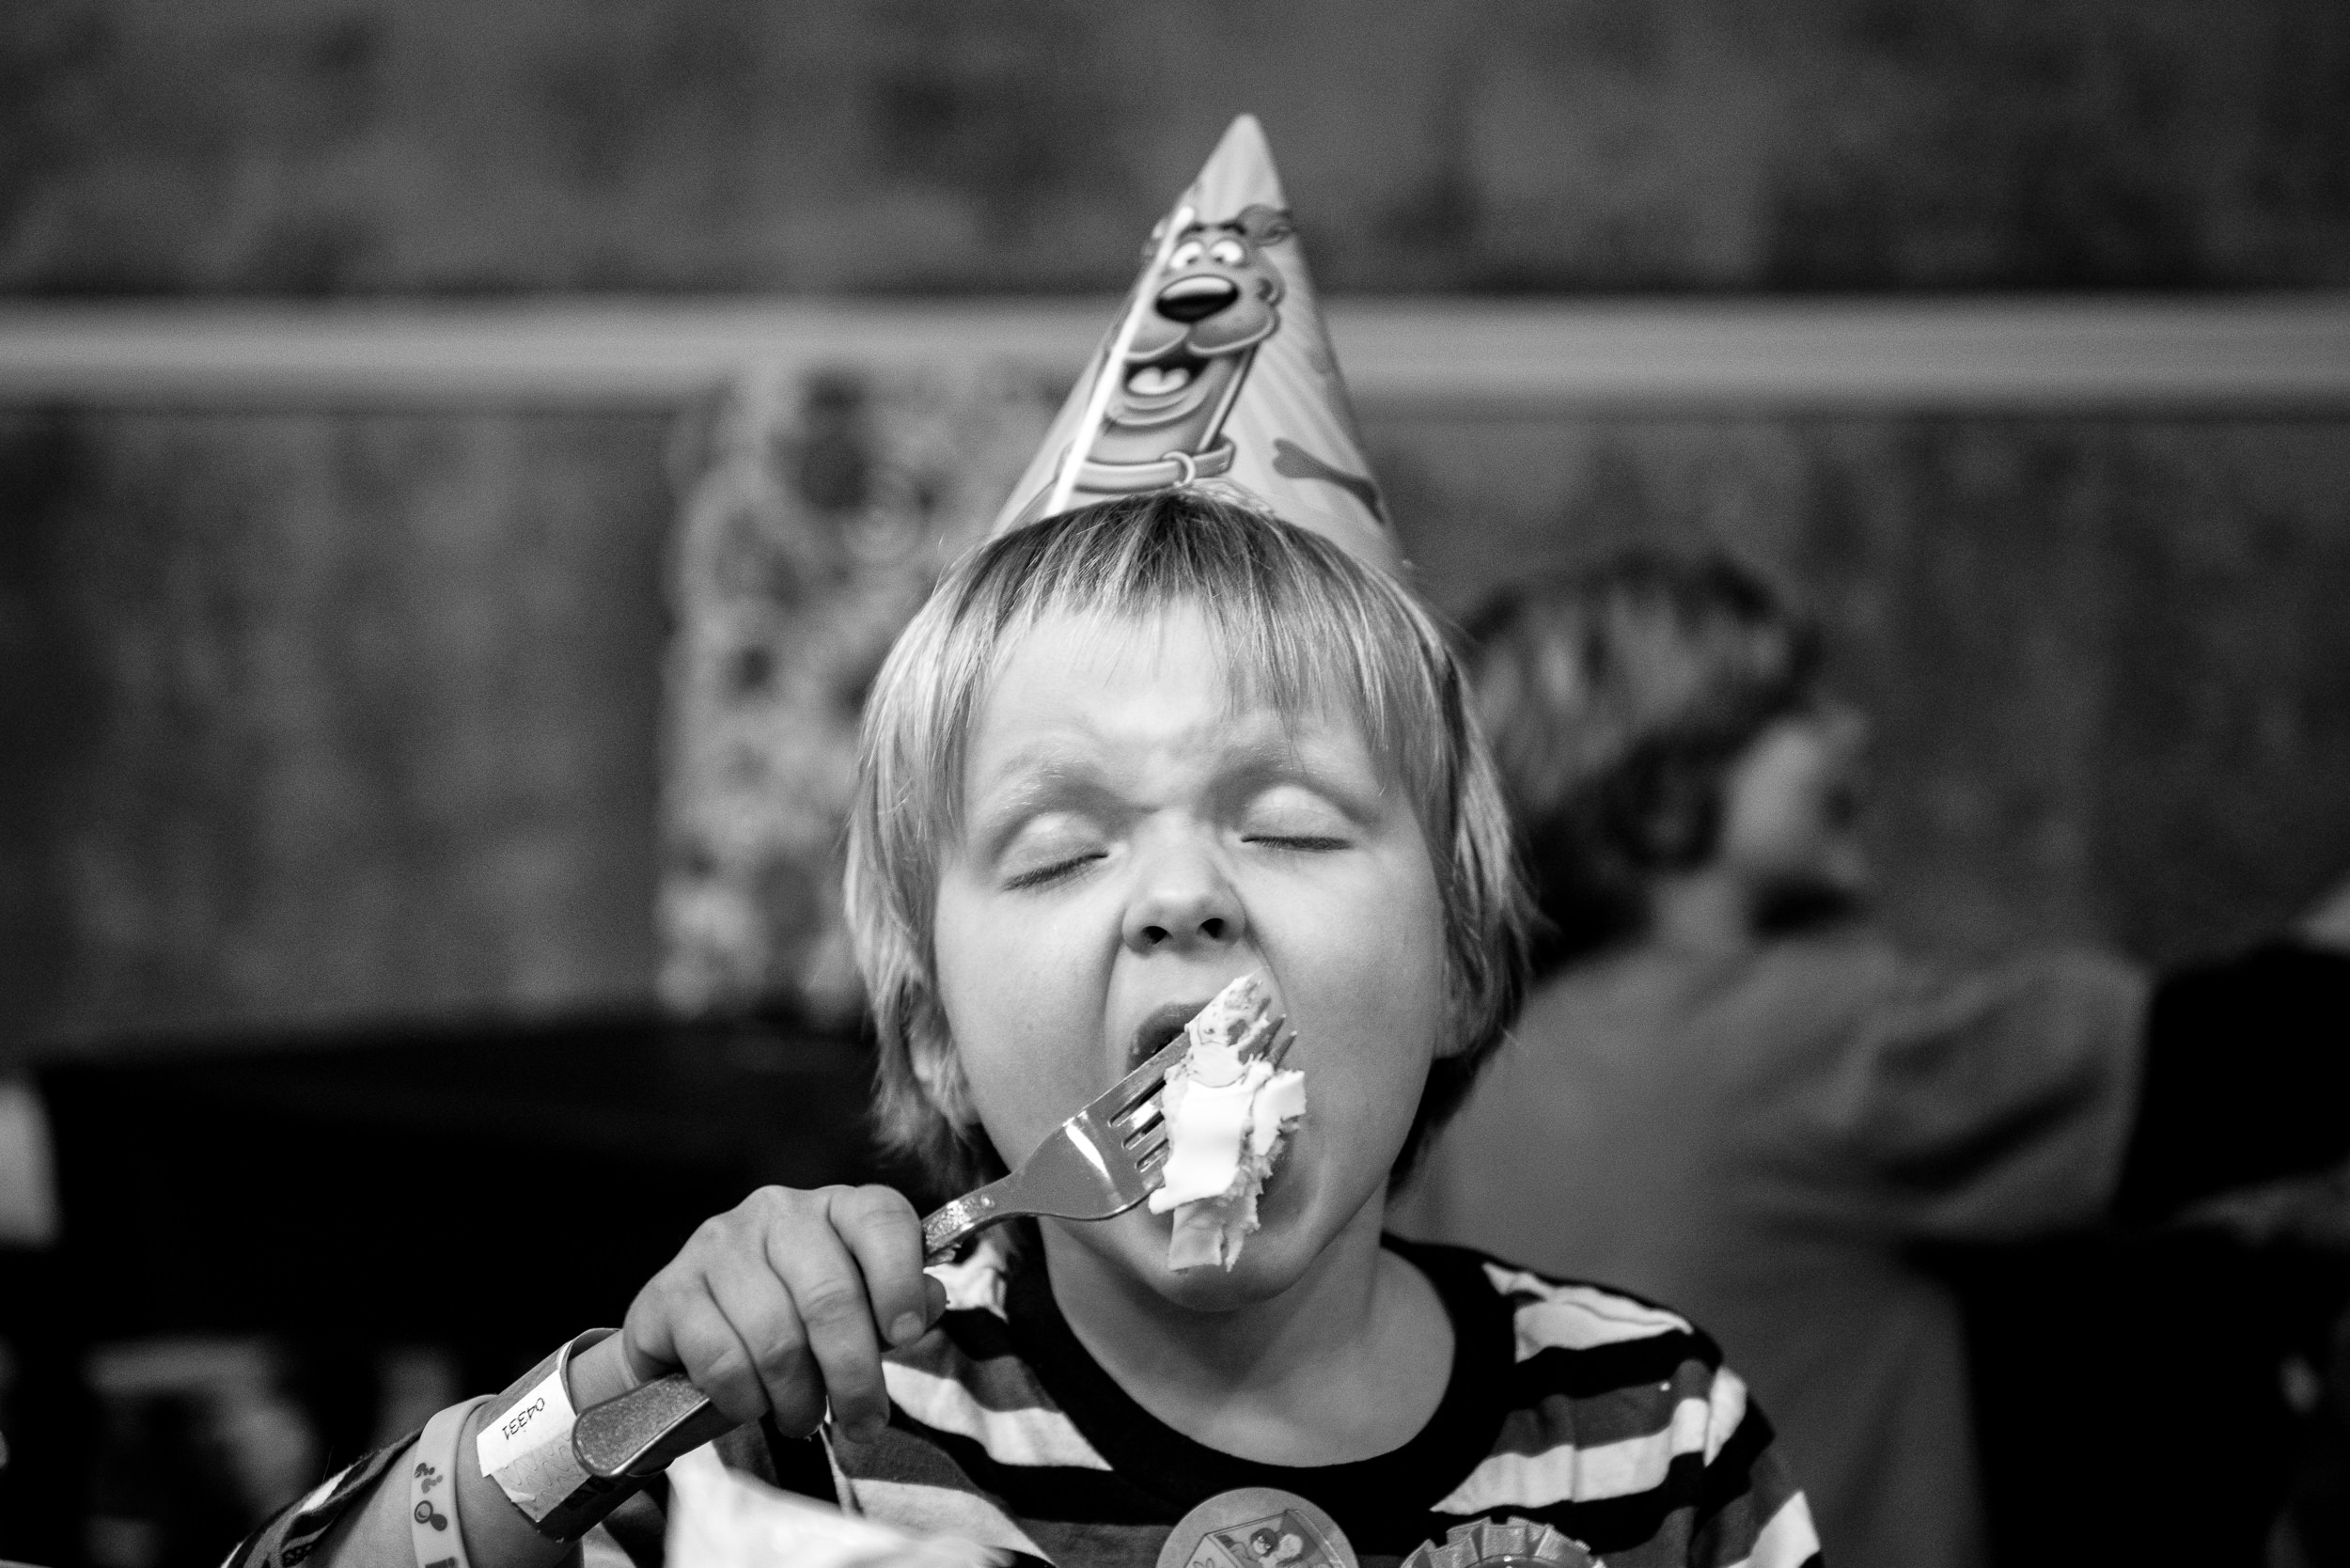 Molly Rees Photo - Black and White Documentary Family Photography in Denver, Colorado - birthday boy eating cake by M. Menschel